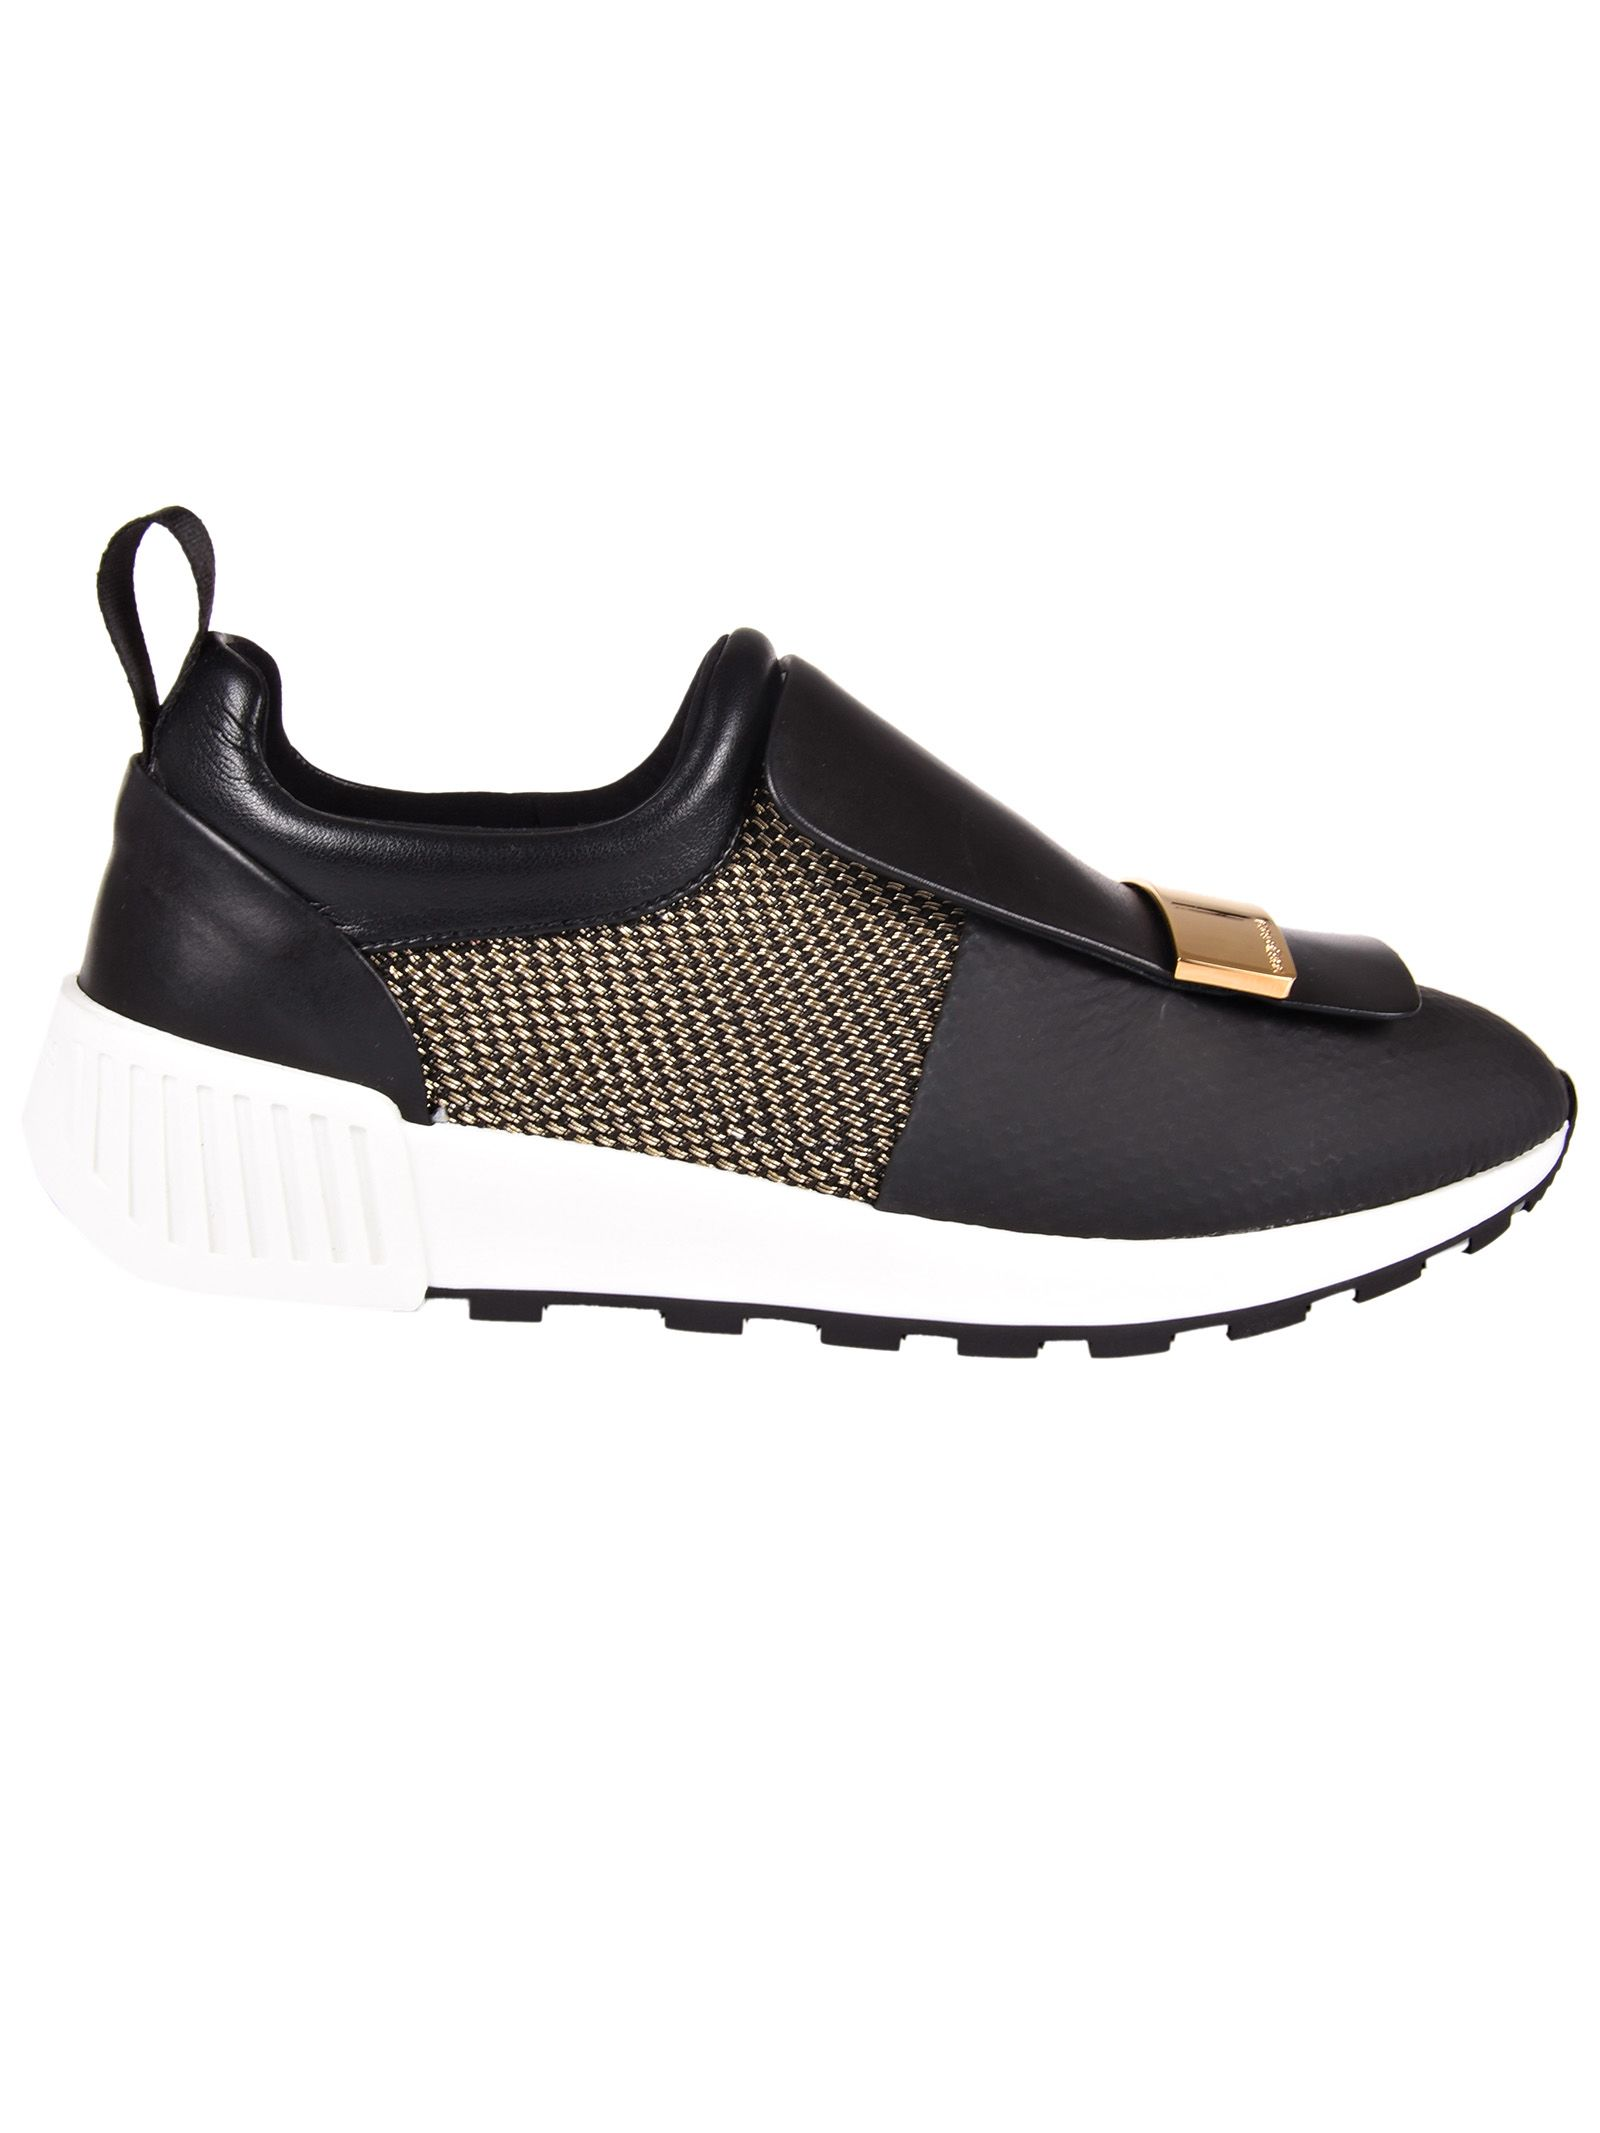 Buy Cheap New Sergio Rossi Without Lace Sneakers View Cheap Price iMv6p